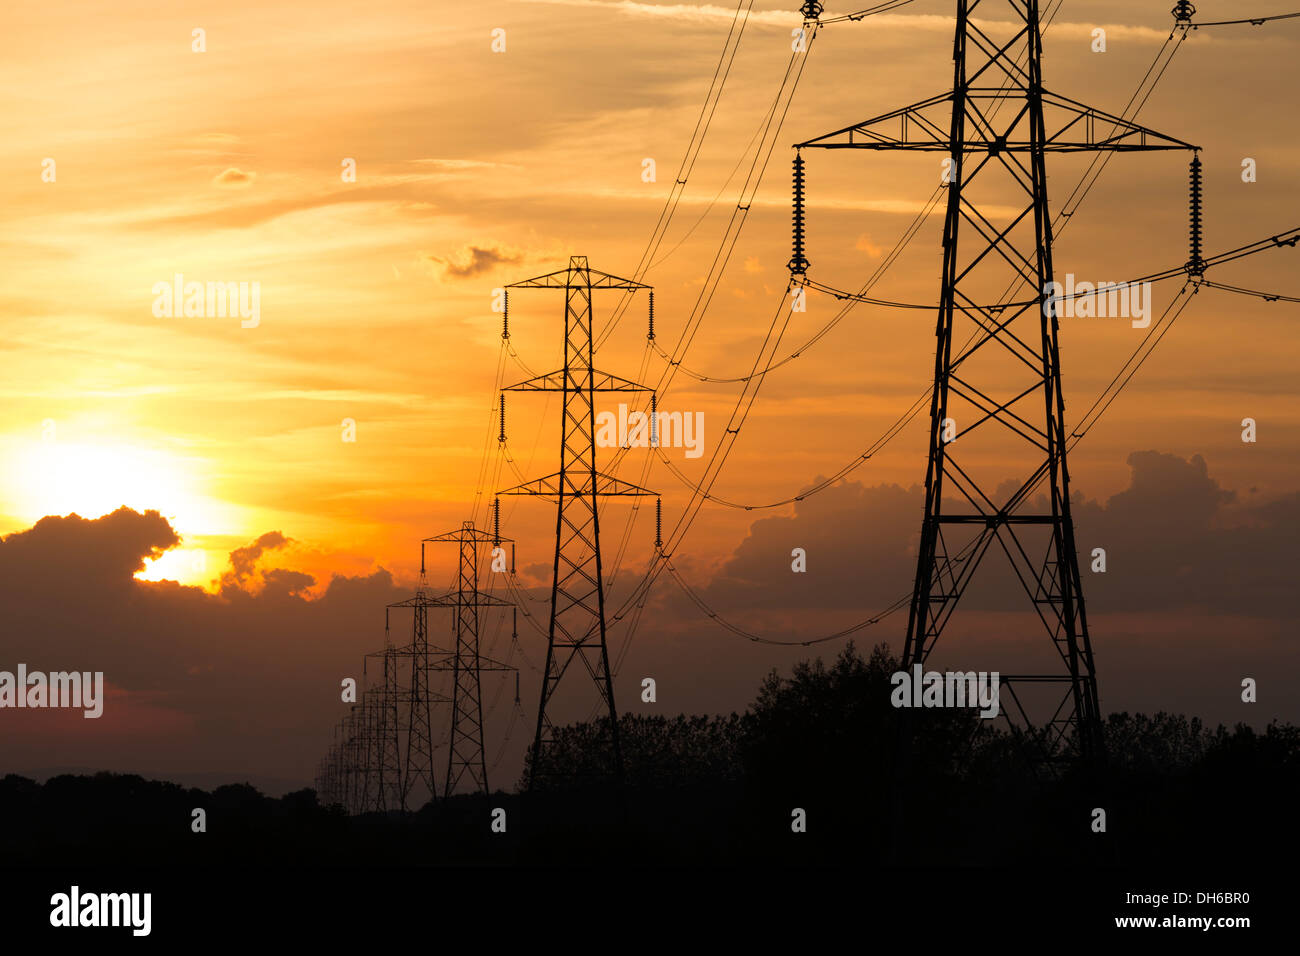 Electricity pylons at sunset, Nr Hinkley Point, Somerset - Stock Image